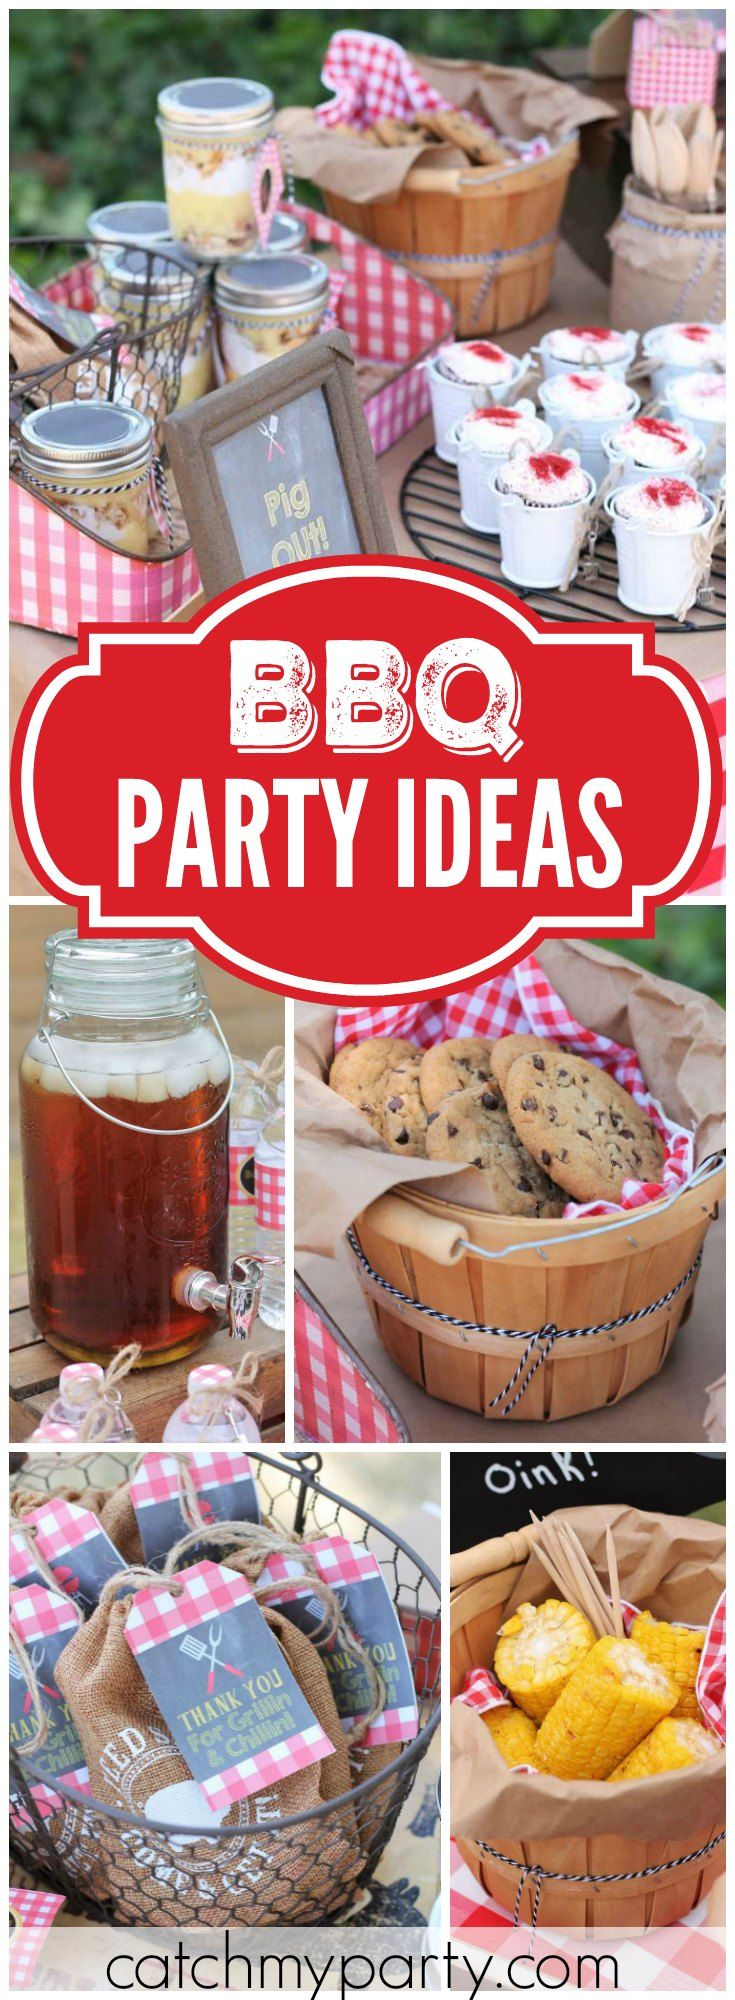 How great is this patriotic backyard summer BBQ party! See more party ideas at Catchmyparty.com!